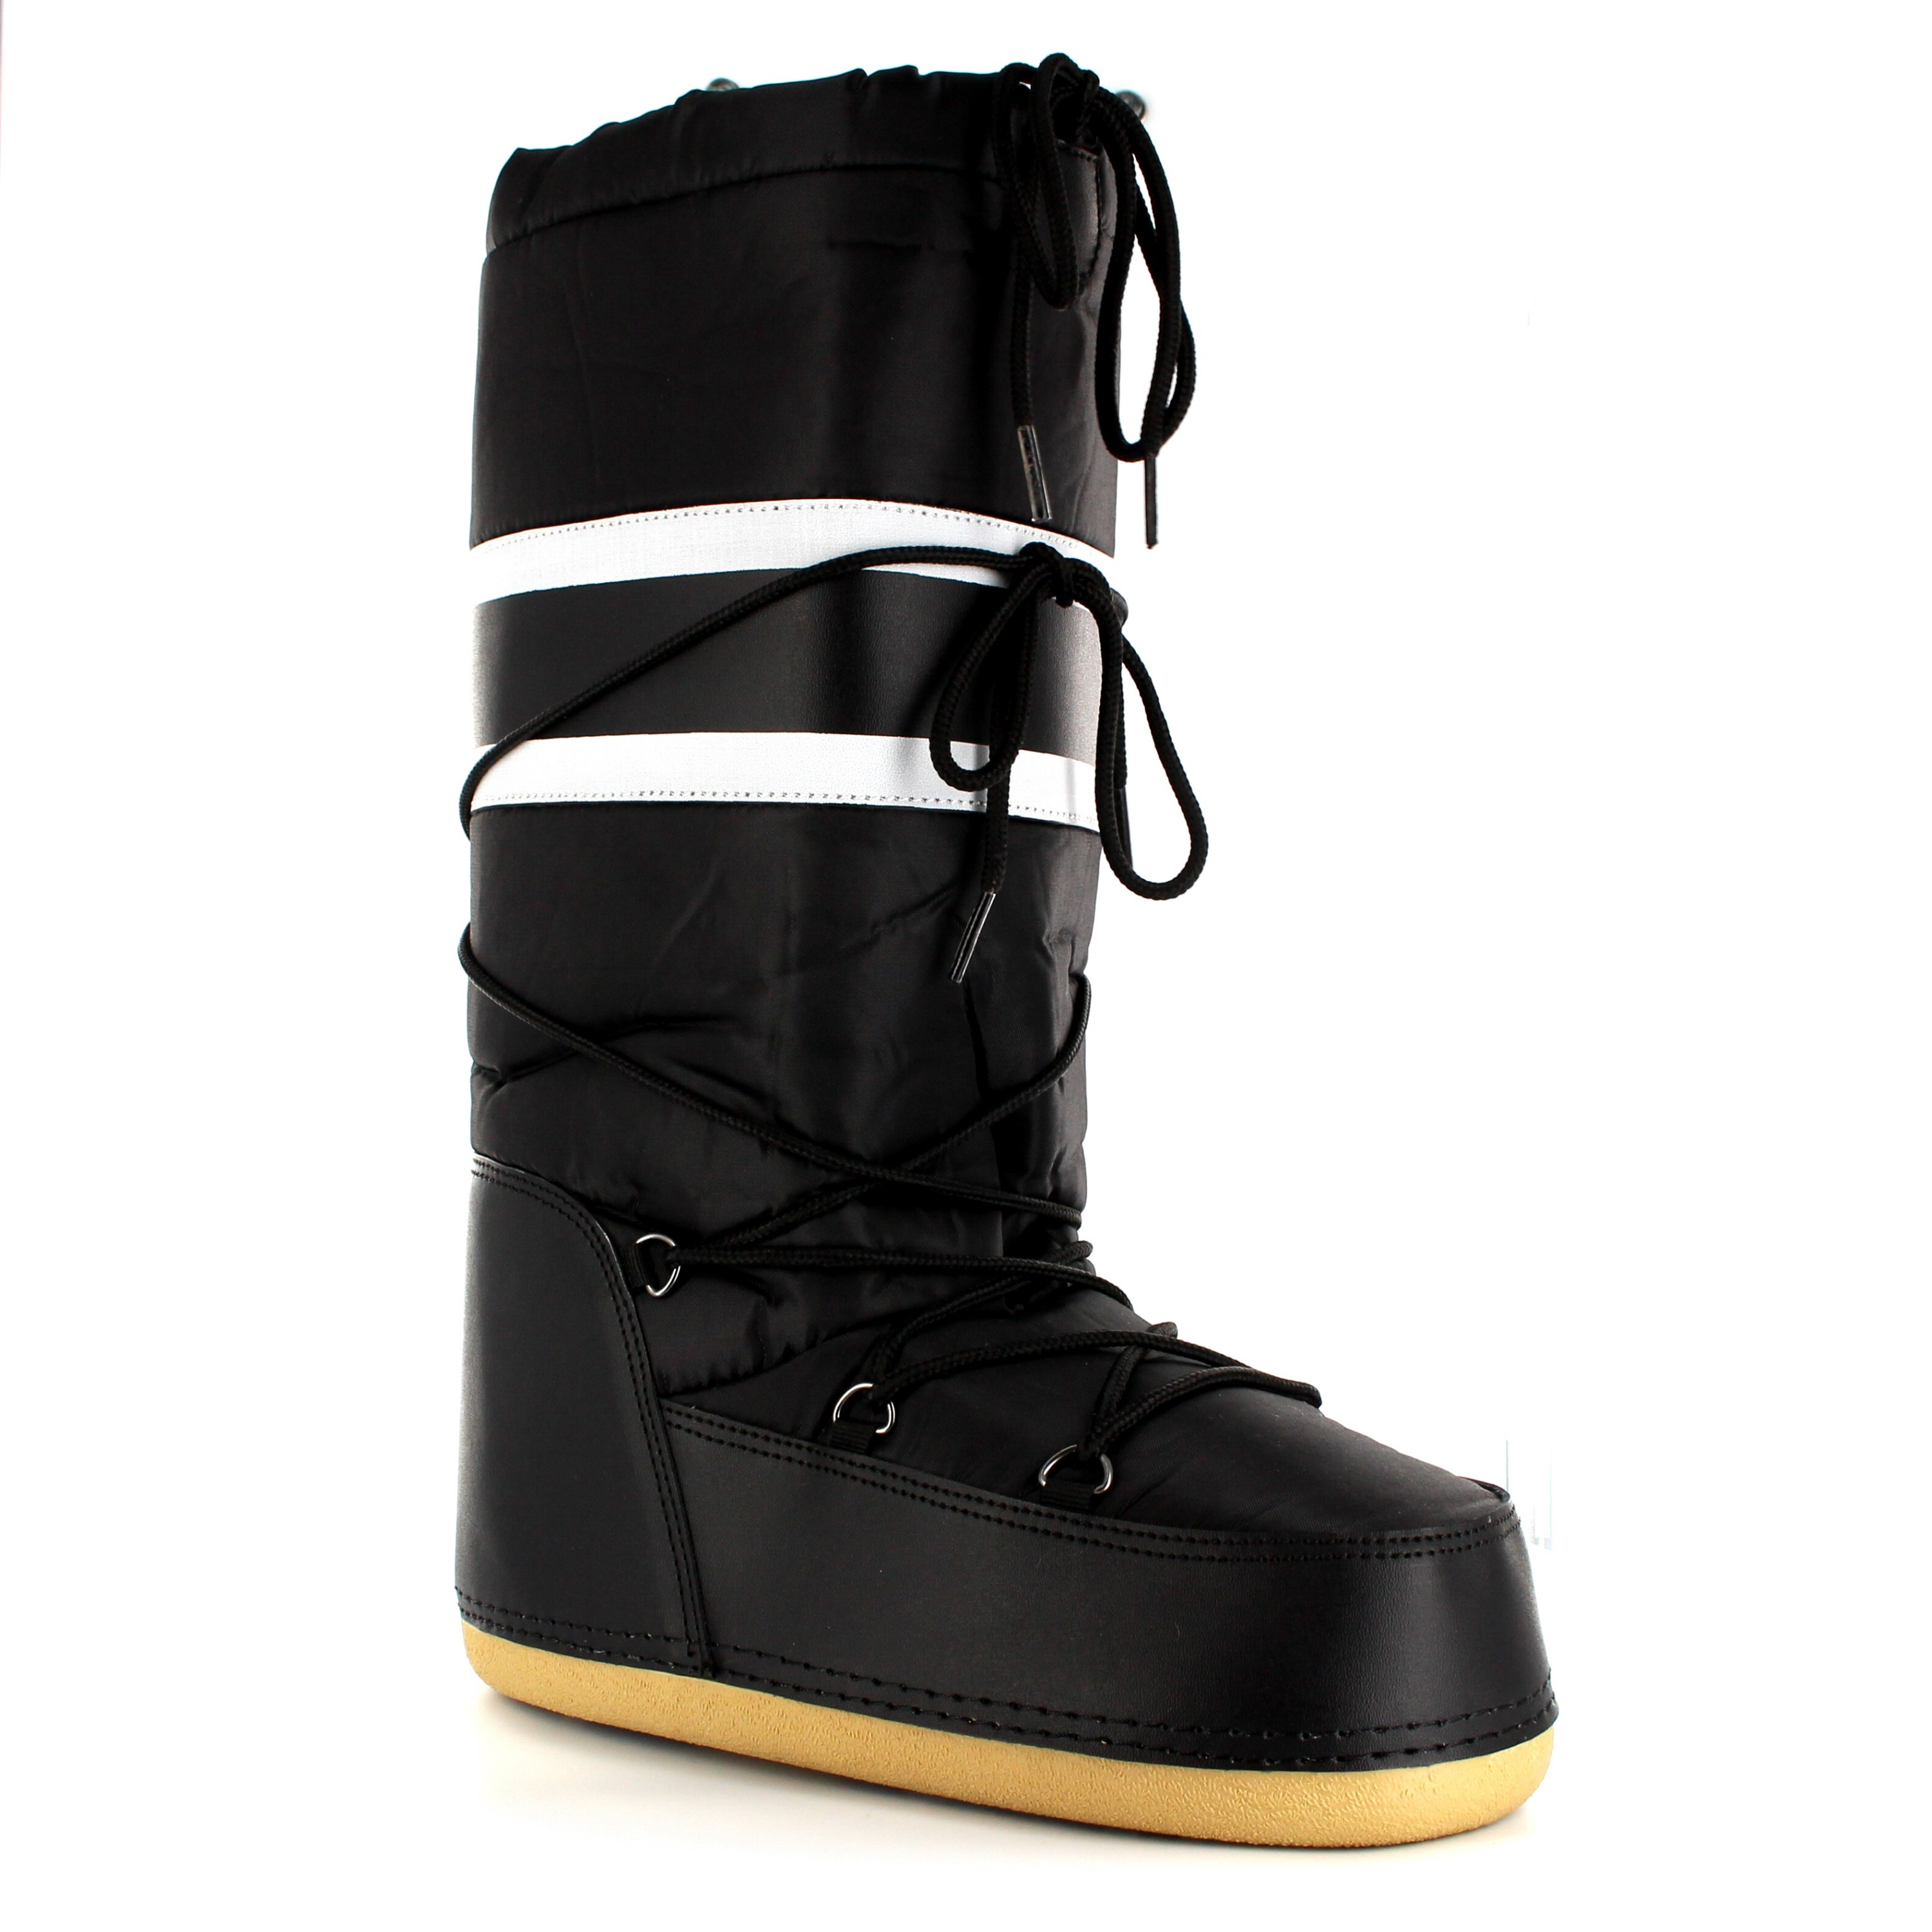 Nylon Tall Classic Snow Boots